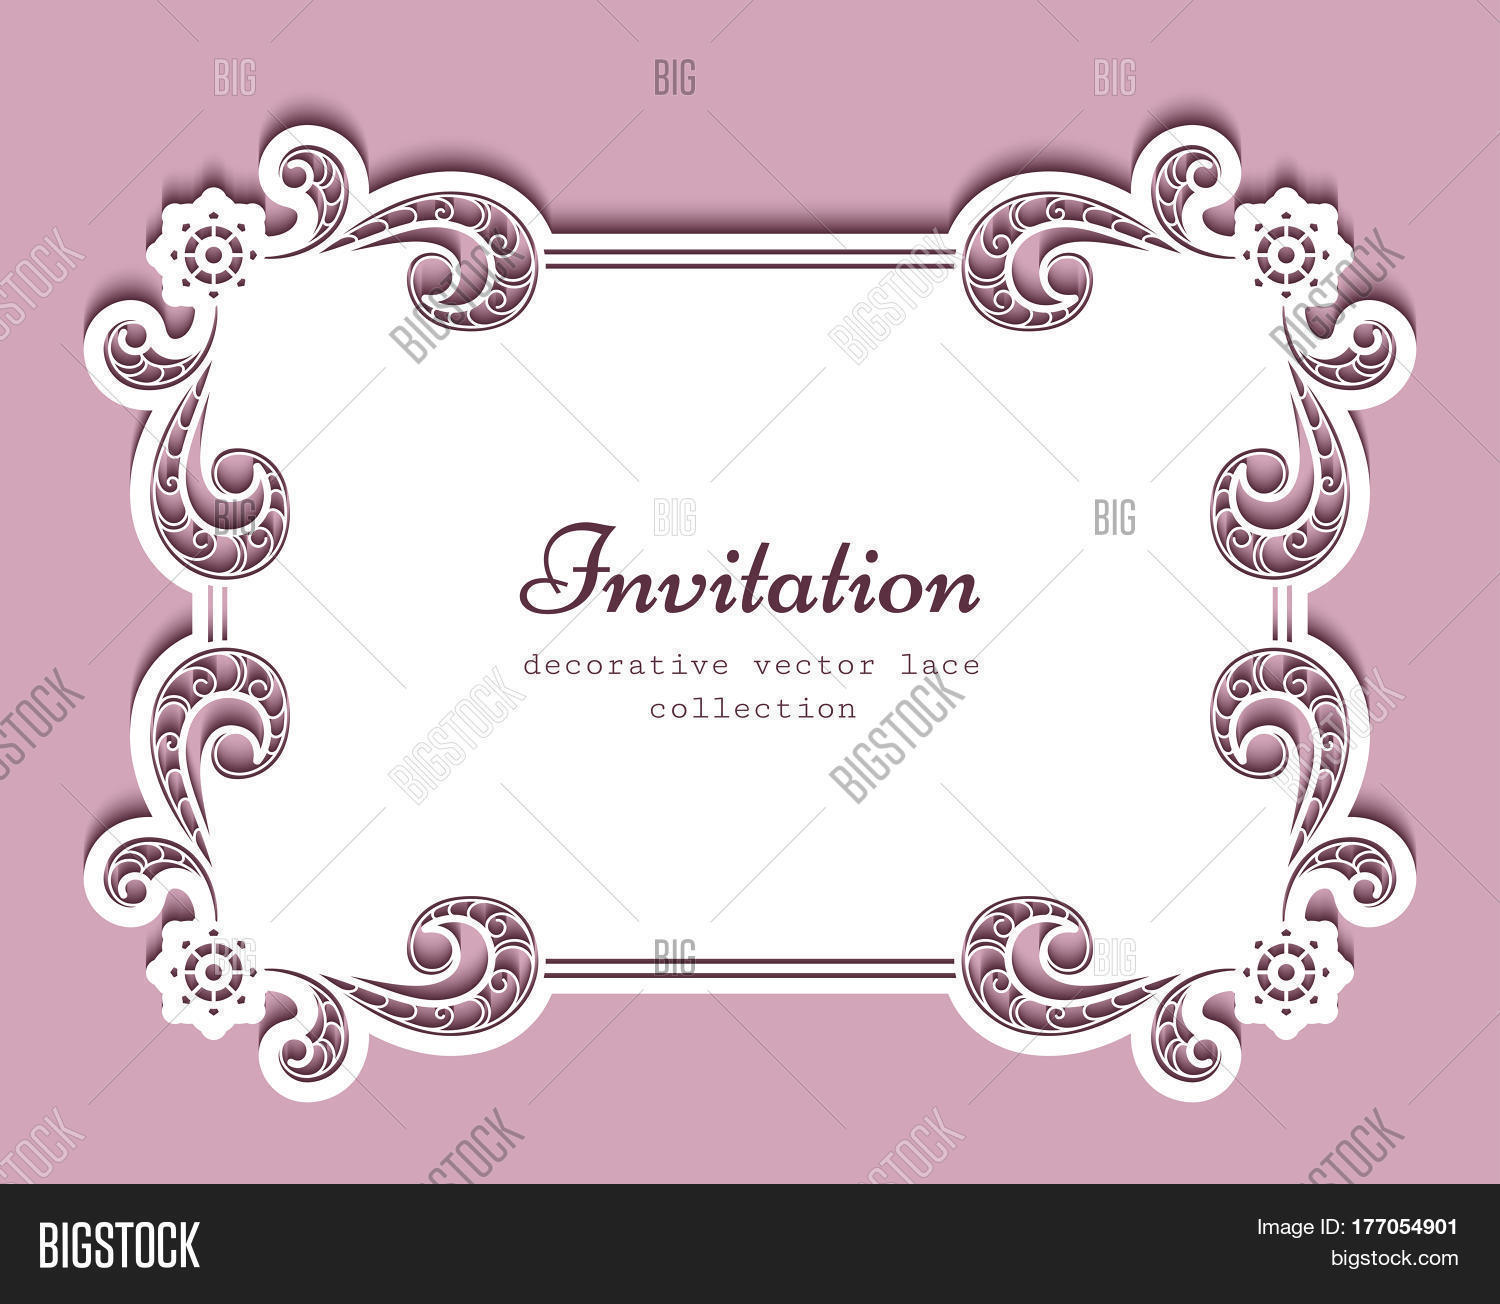 Rectangle Frame With Cutout Paper Lace Border, Suitable For Laser Cutting  Or Wood Carving,